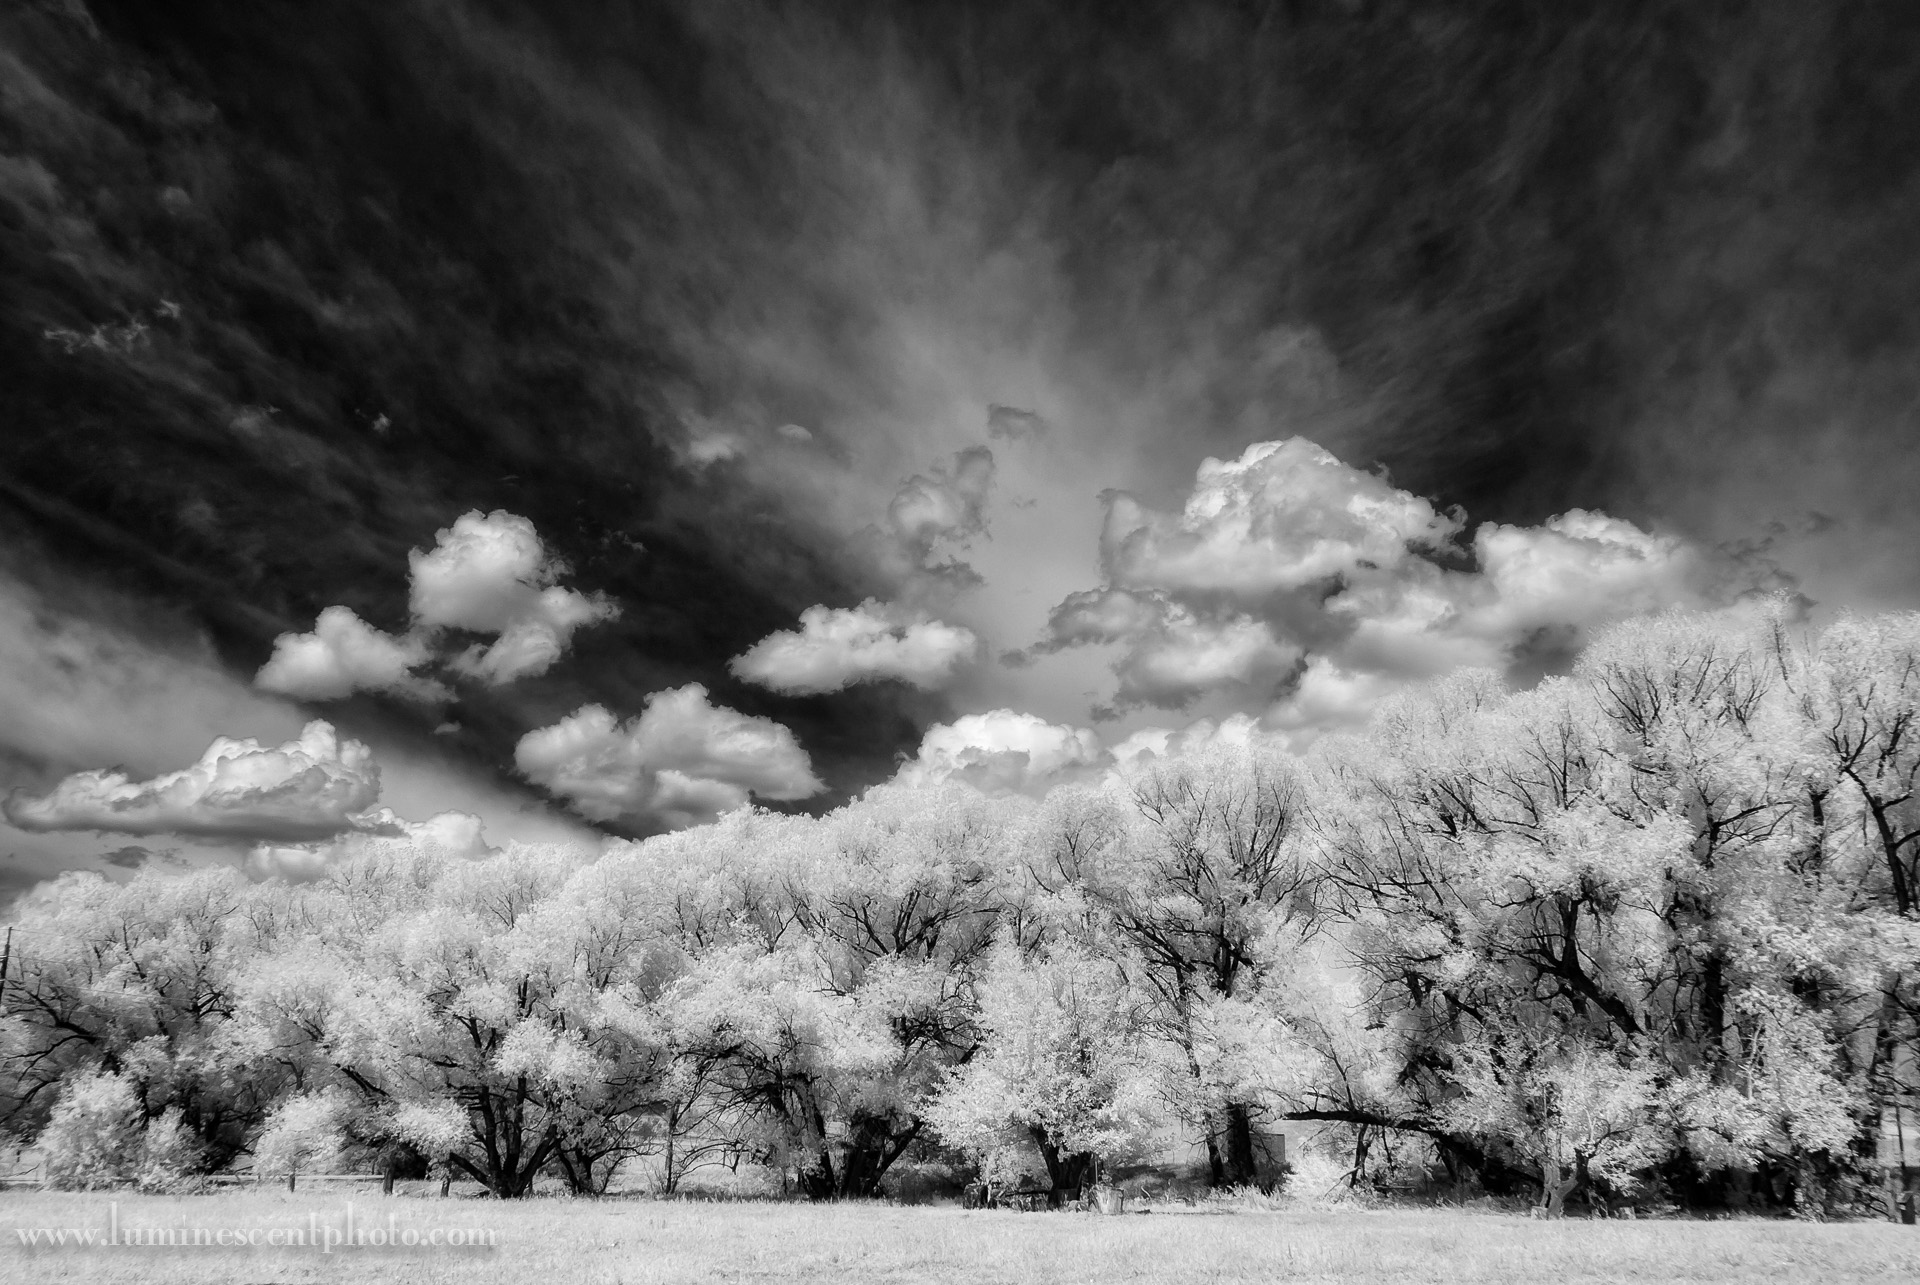 Cottonwoods and Clouds, Colorado Springs, CO. Captured with an infrared-coverted Nikon 1 V1 camera.